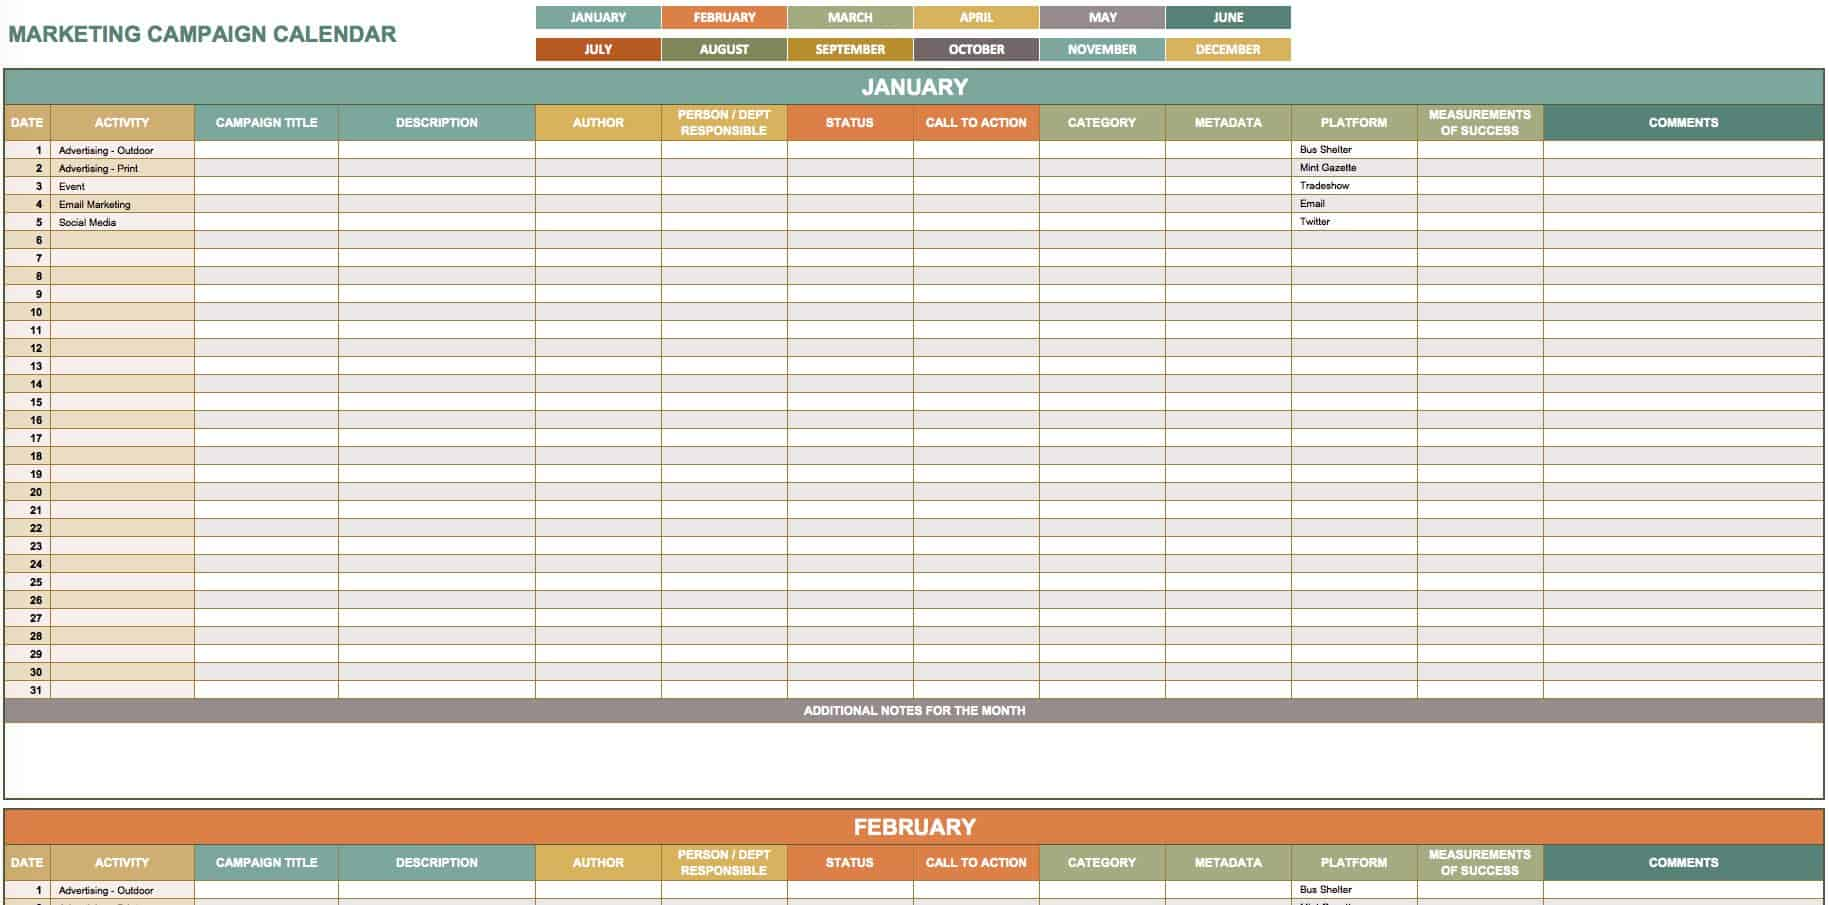 9 free marketing calendar templates for excel smartsheet marketingcampaigncalendarg saigontimesfo